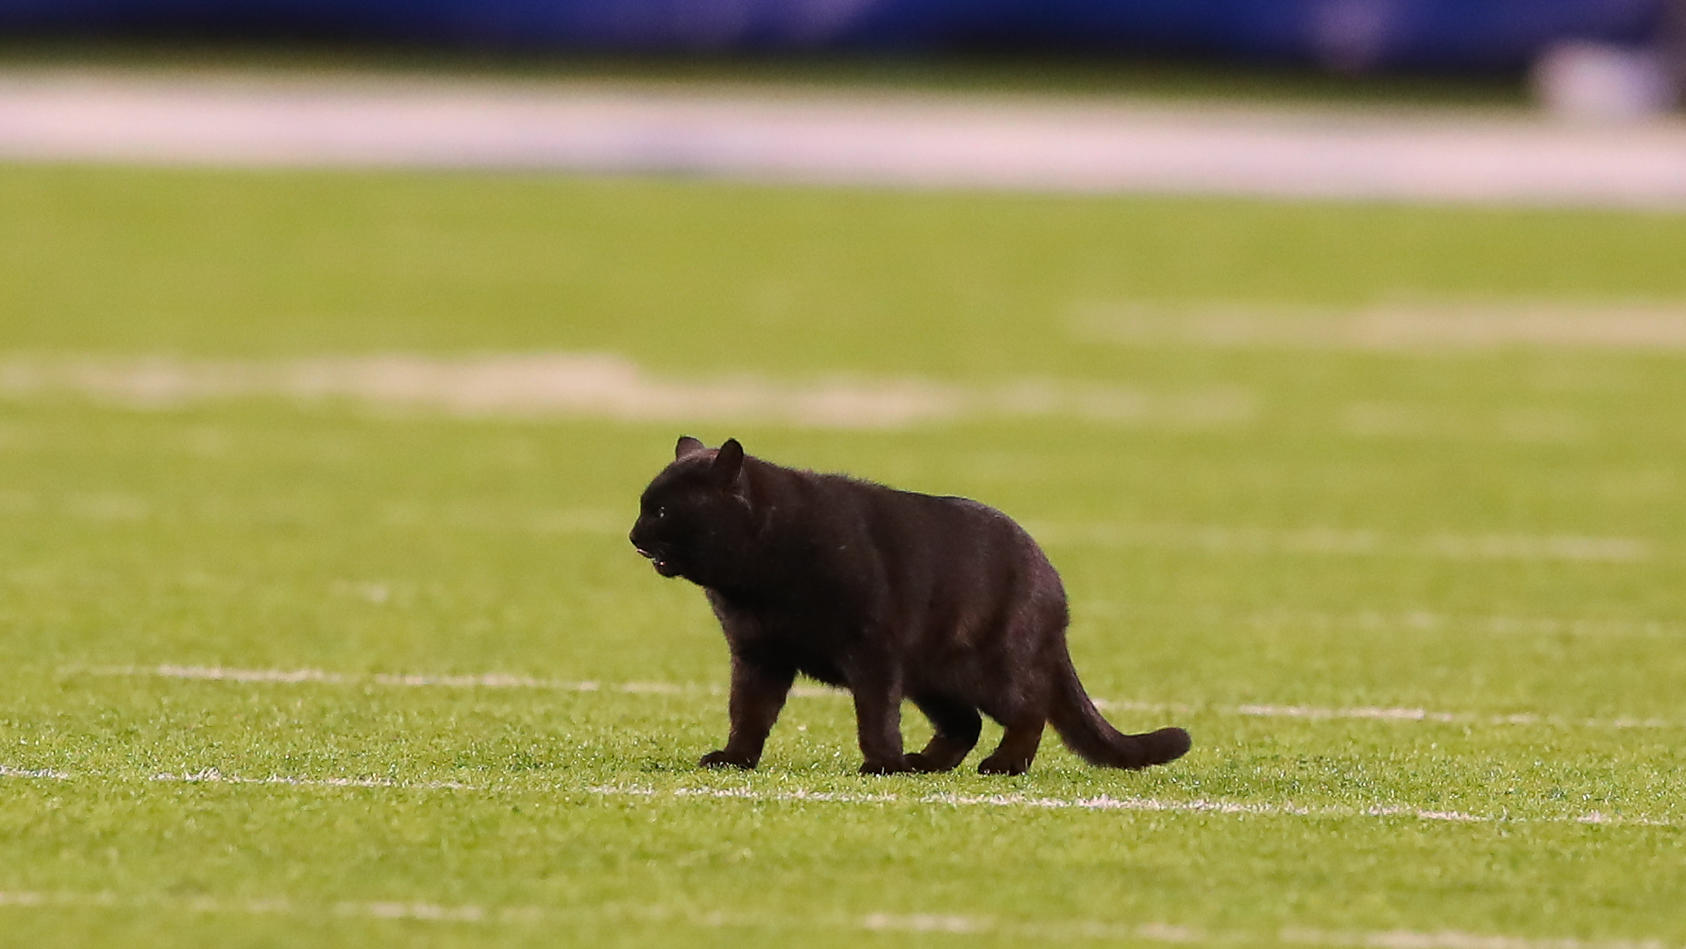 EAST RUTHERFORD, NJ - NOVEMBER 04: A Black Cat runs onto the field during the second quarter of the National Football L